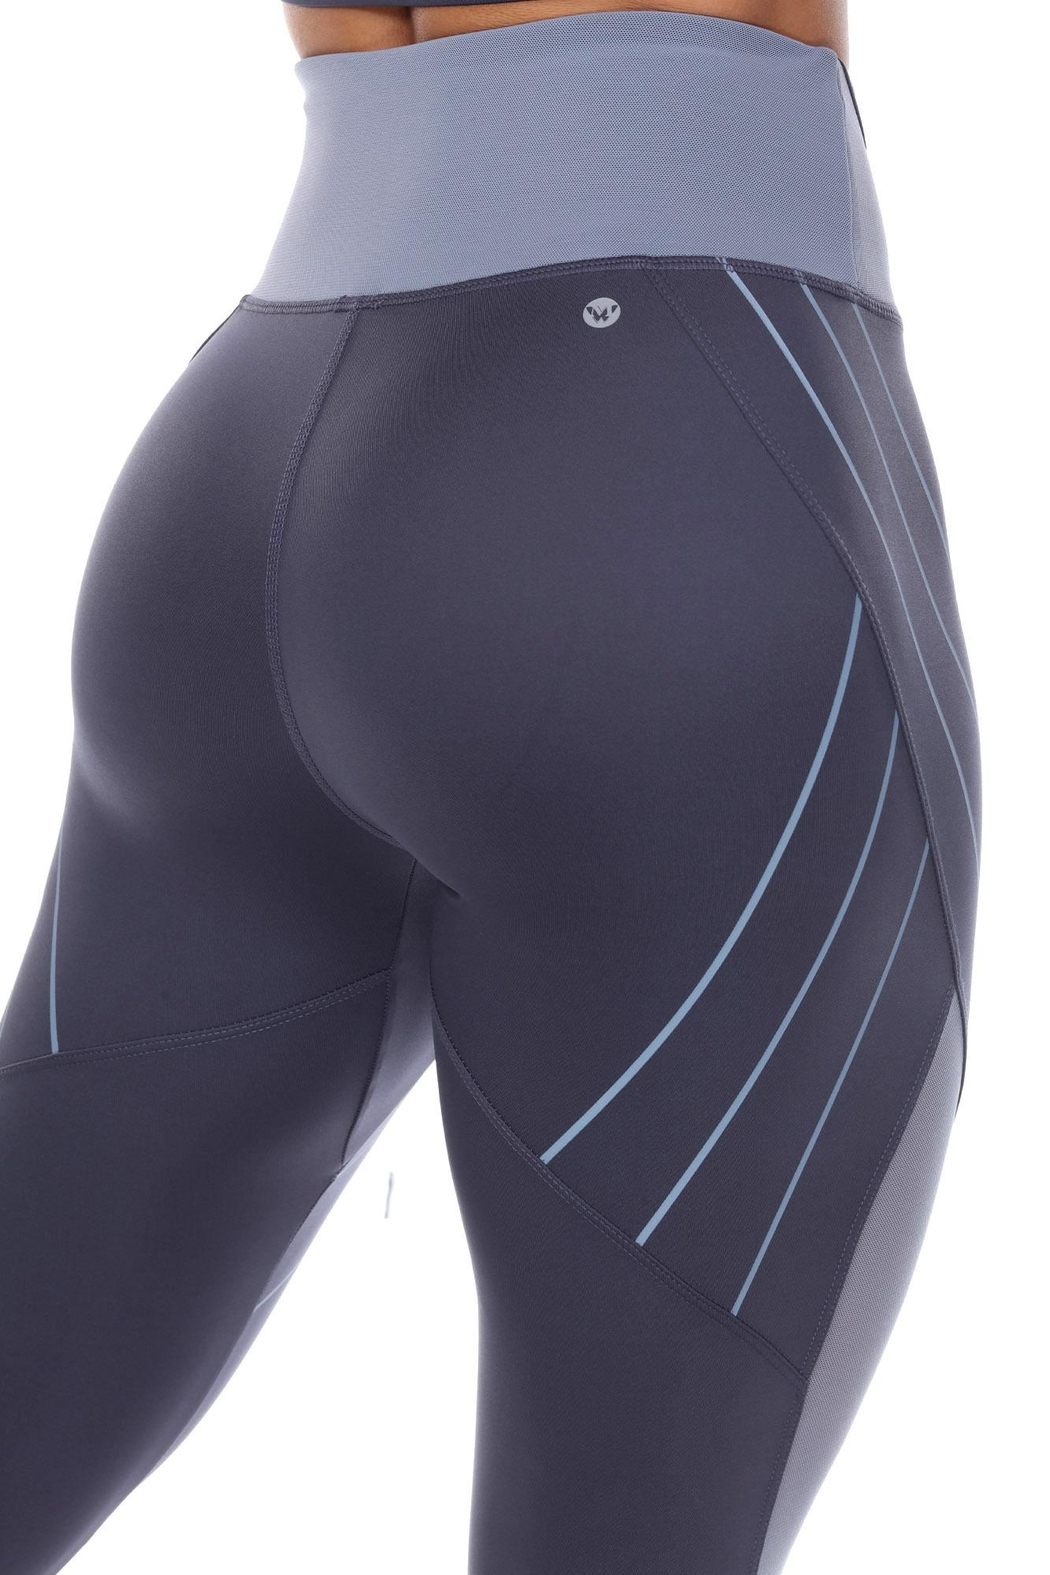 White Mark High-Waist Reflective Piping Fitness Leggings - Back Cropped Image